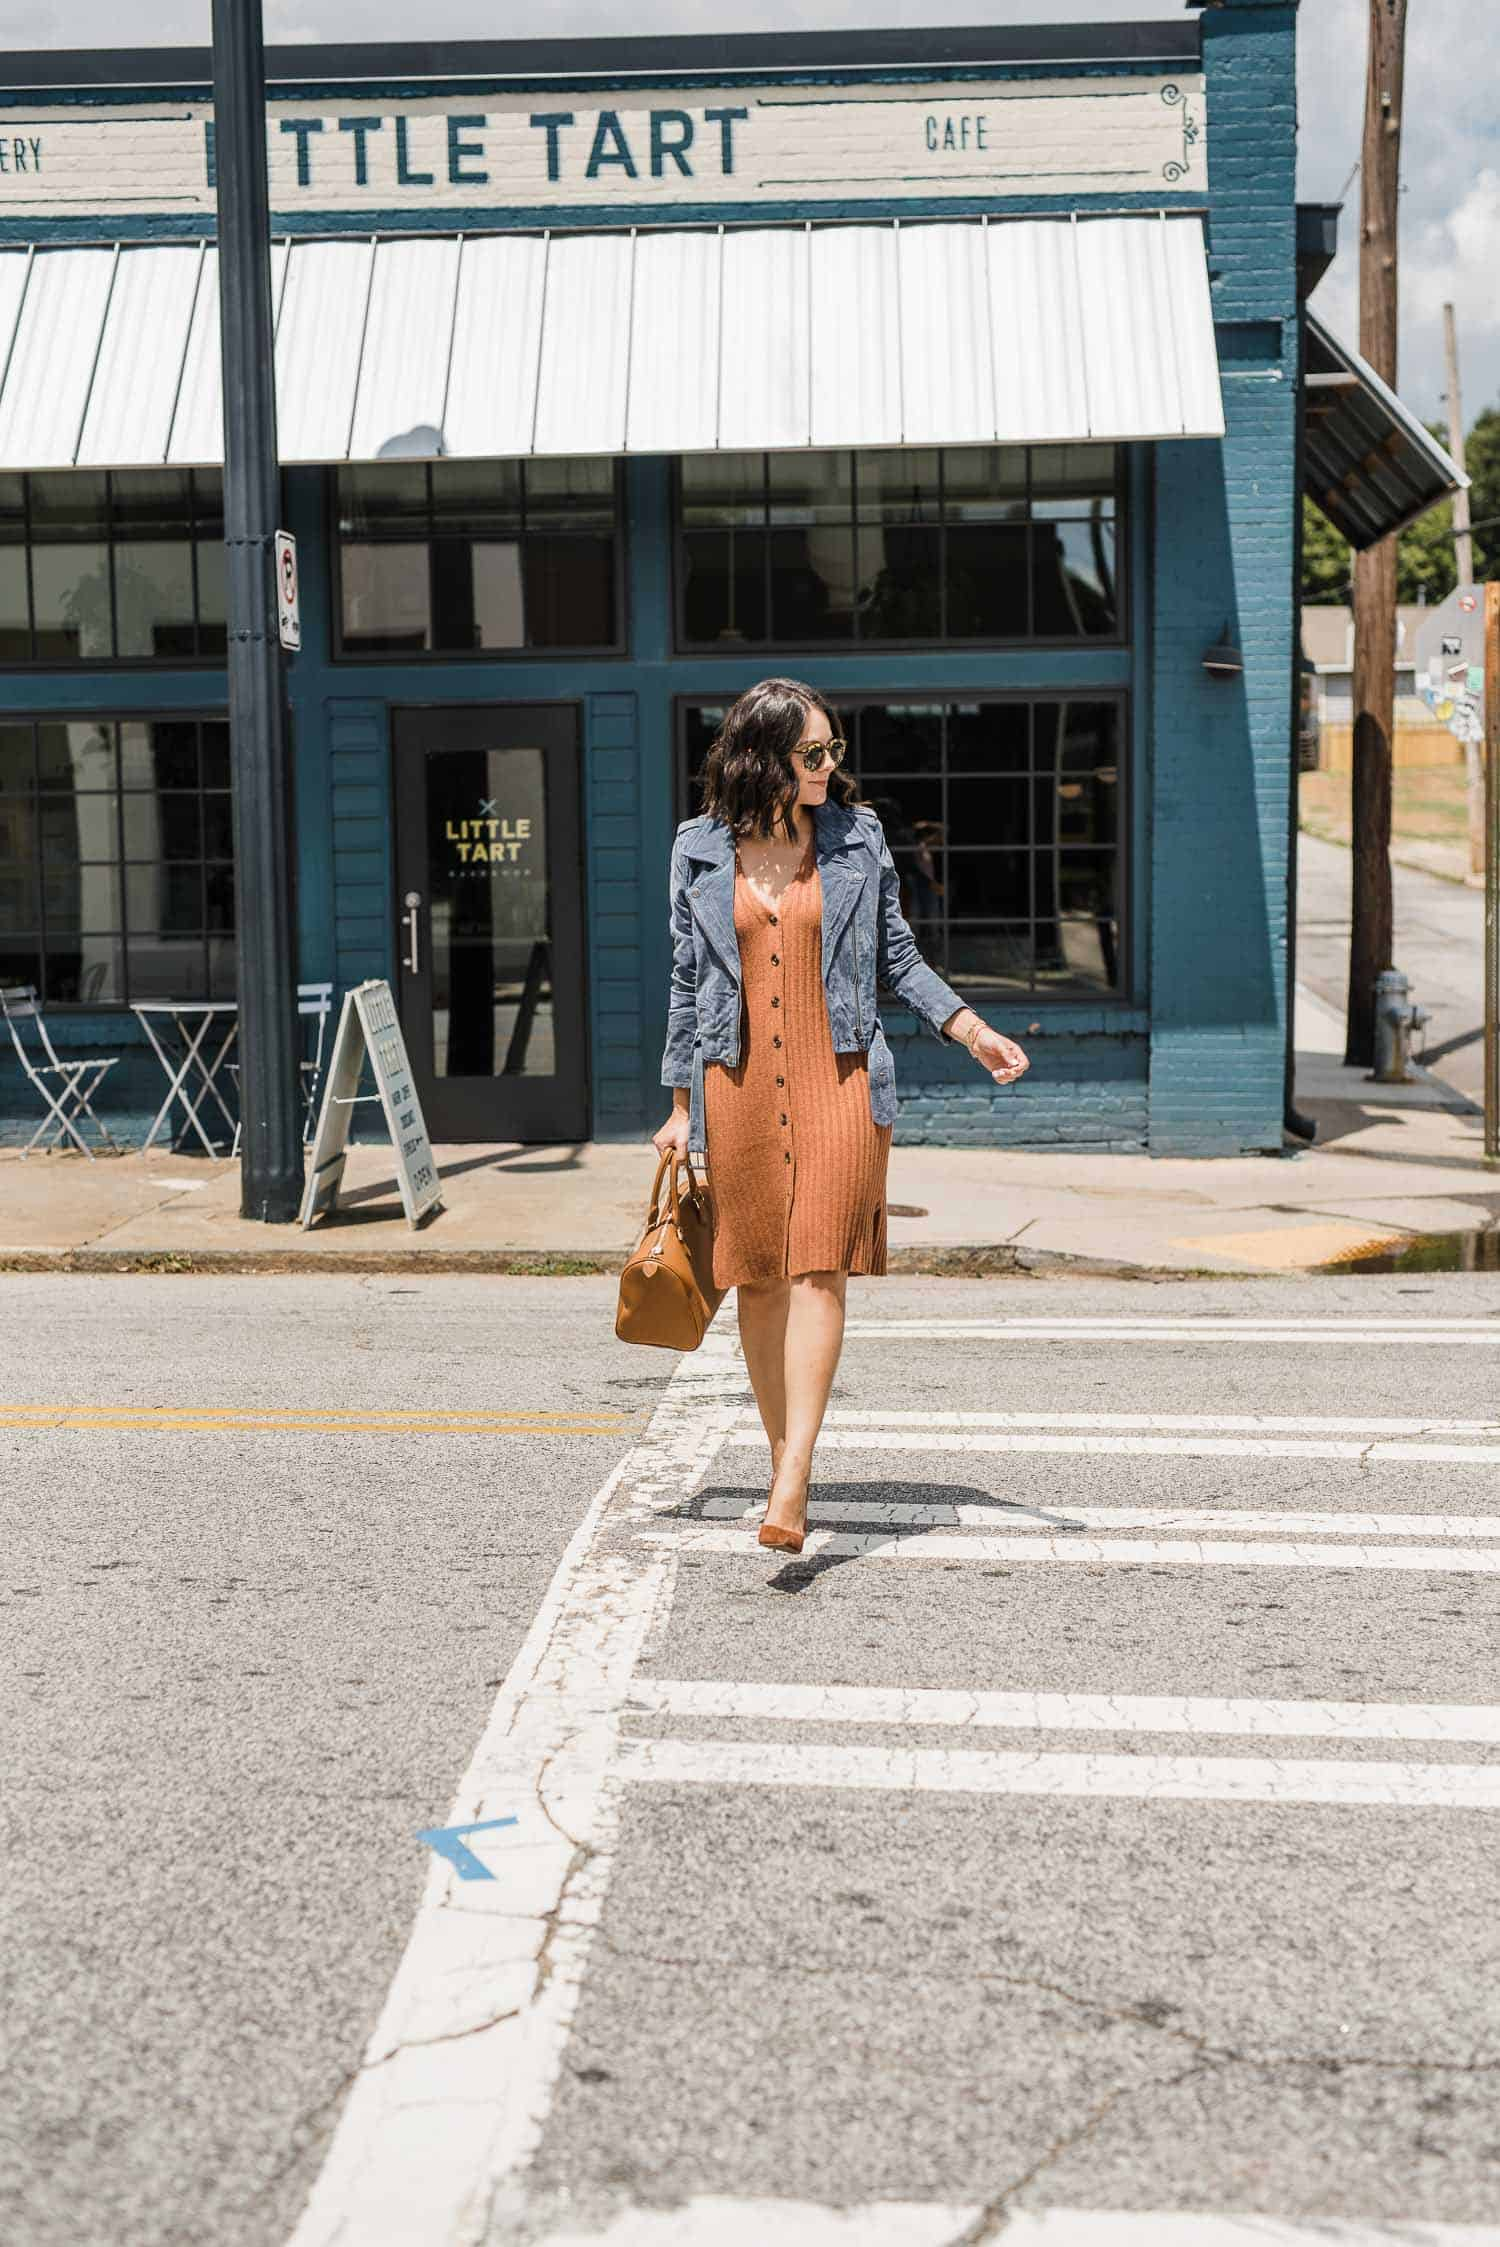 what to buy includes a beige dress, a jean jacket, and a tan bag